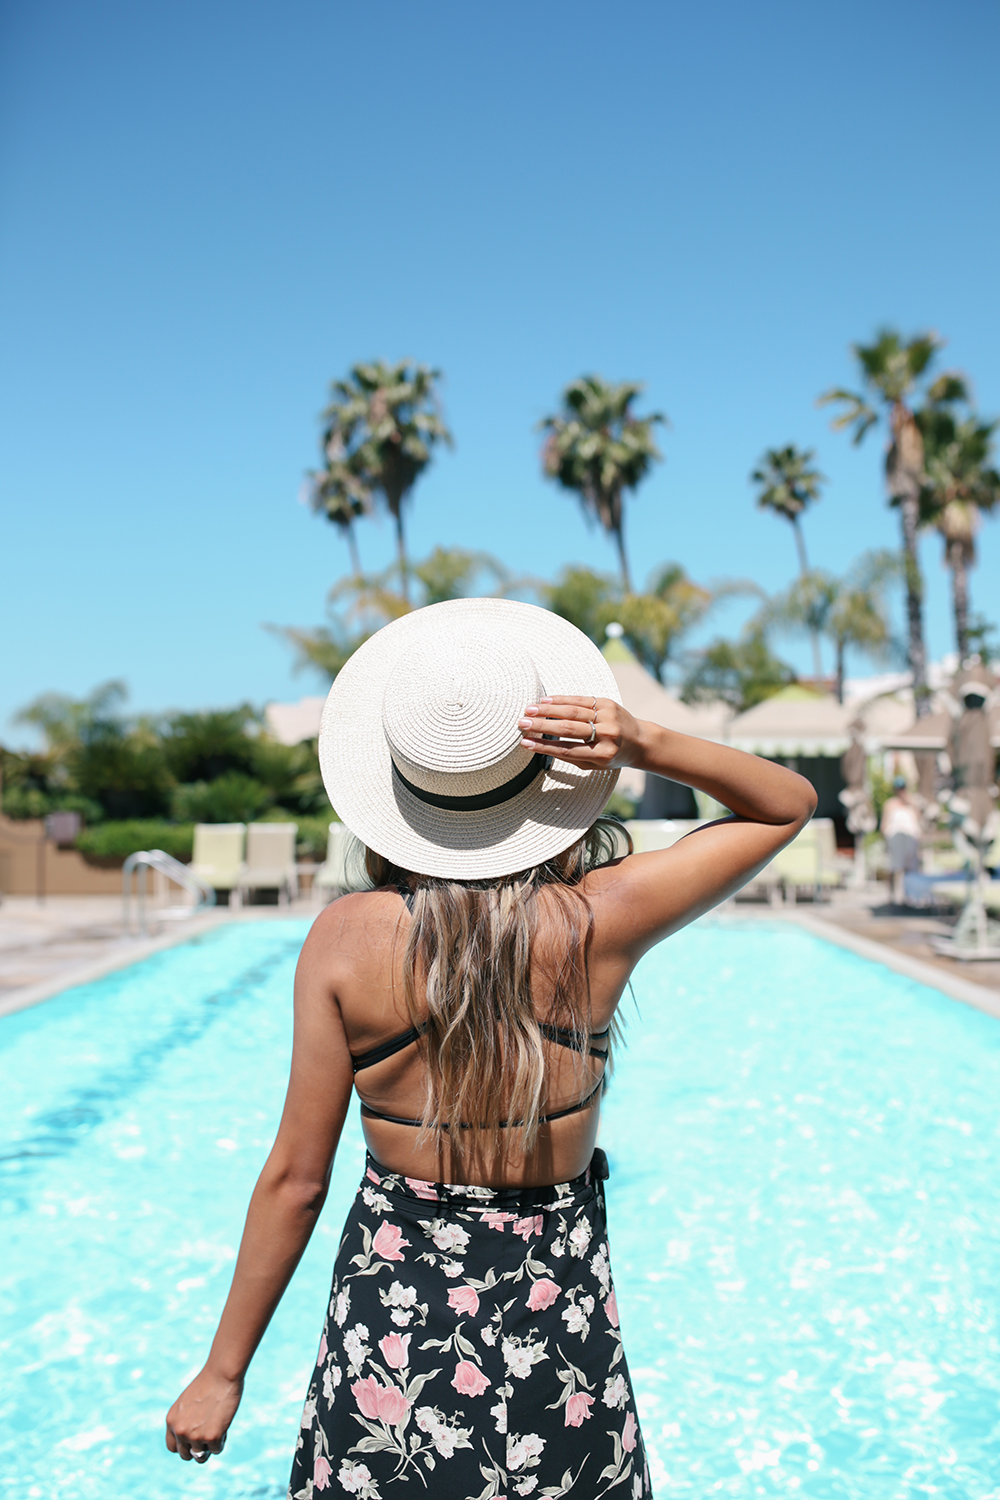 Overnight Getaway - Be Right Back!, Pala Casino Resort and Spa, san diego, trip, overnight getaway, travel, getaway, melrodbrb, melrodstyle, la blogger, travel blogger, lifestyle, fashion, beauty, traveling, girls born to travel